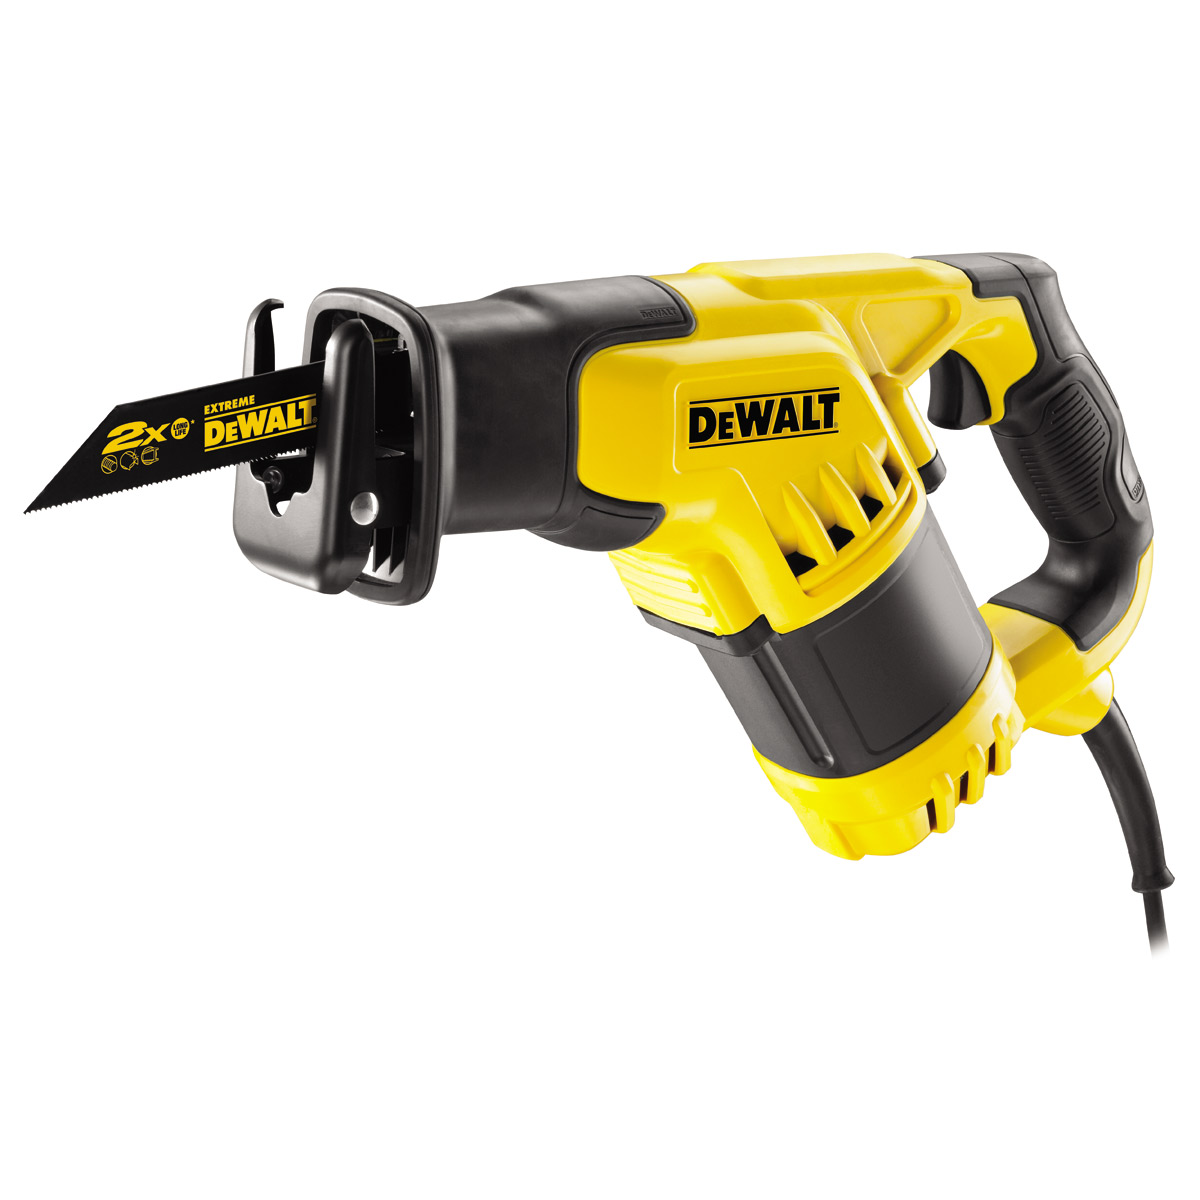 DEWALT DWE357K 10AMP COMPACT RECIPROCATING SAW WITH 4 POSITION BLADE SYSTEM 240V